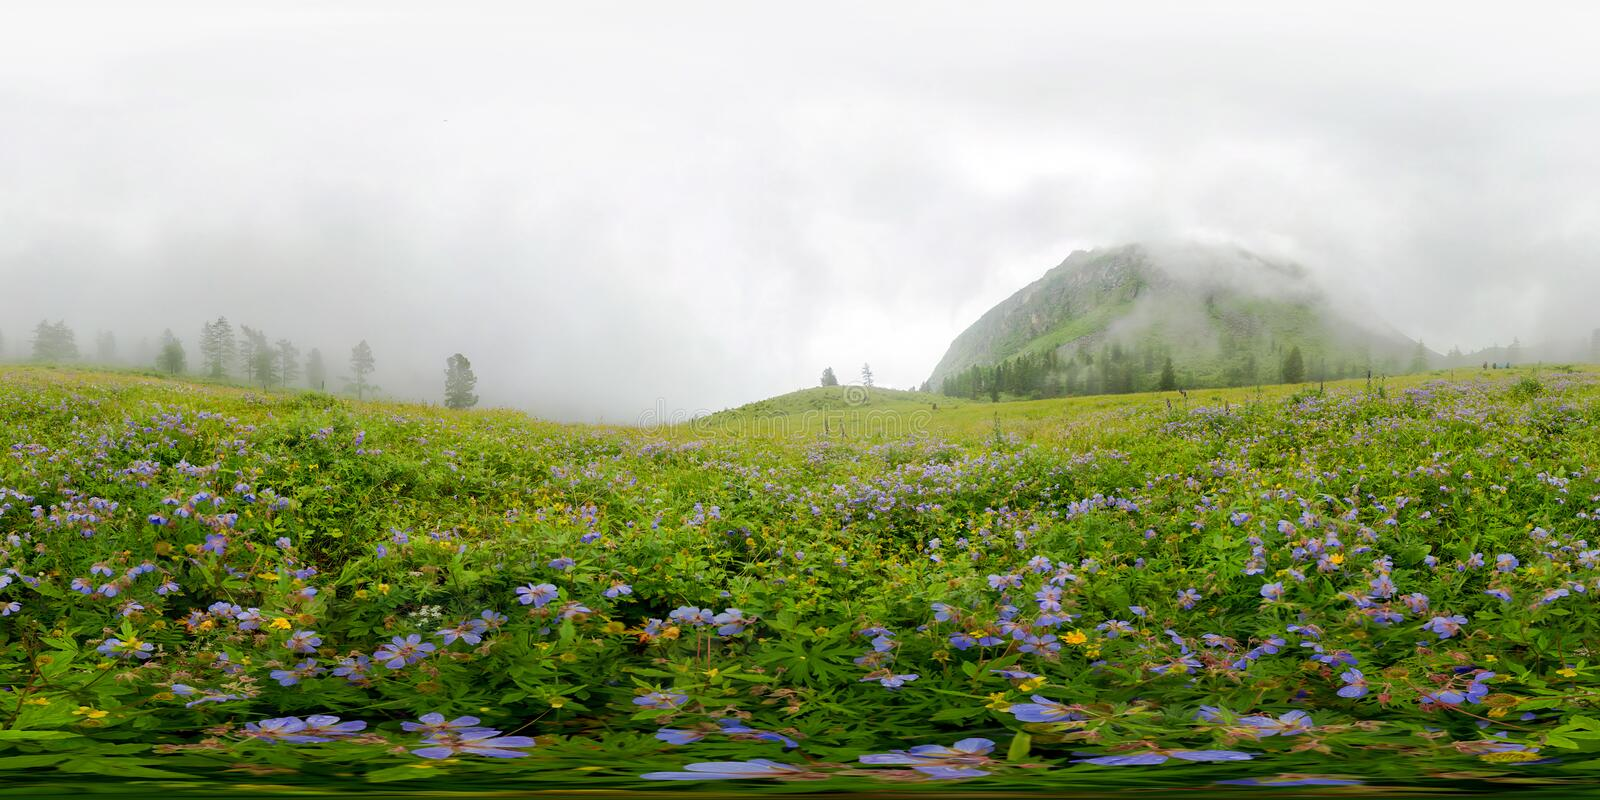 Field of blue flowers in the mountains on a cloudy day. Spherical 360-degree vr panorama royalty free stock photography